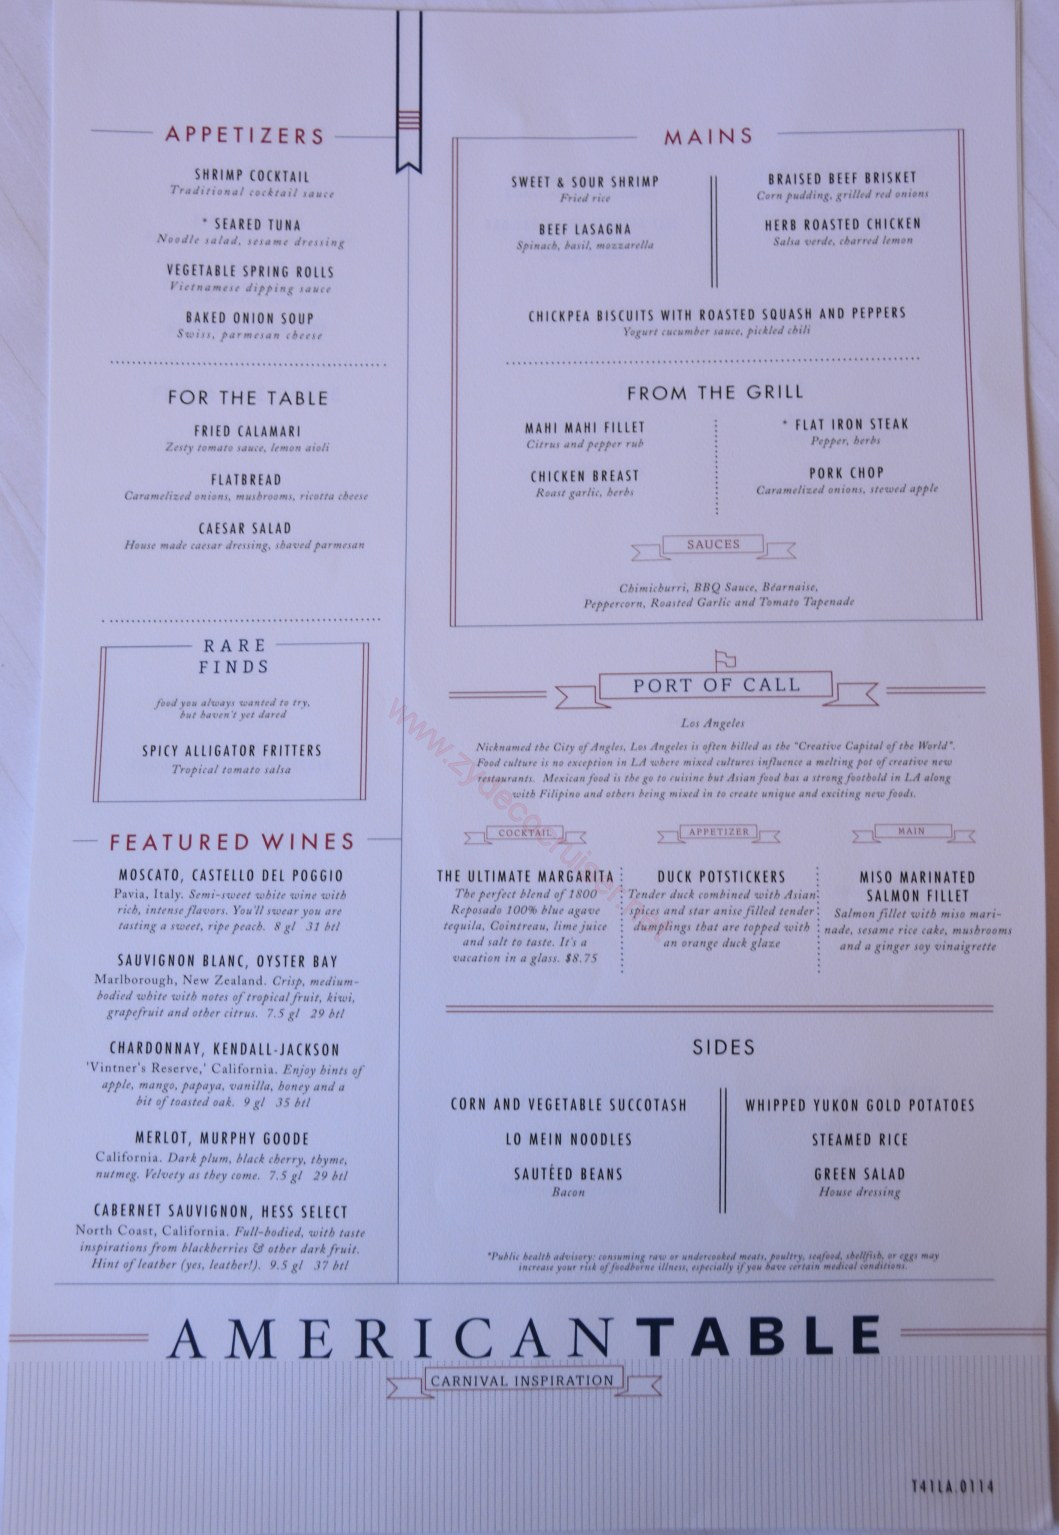 Carnival inspiration 3 day american table menus day 1 for Table menu restaurant